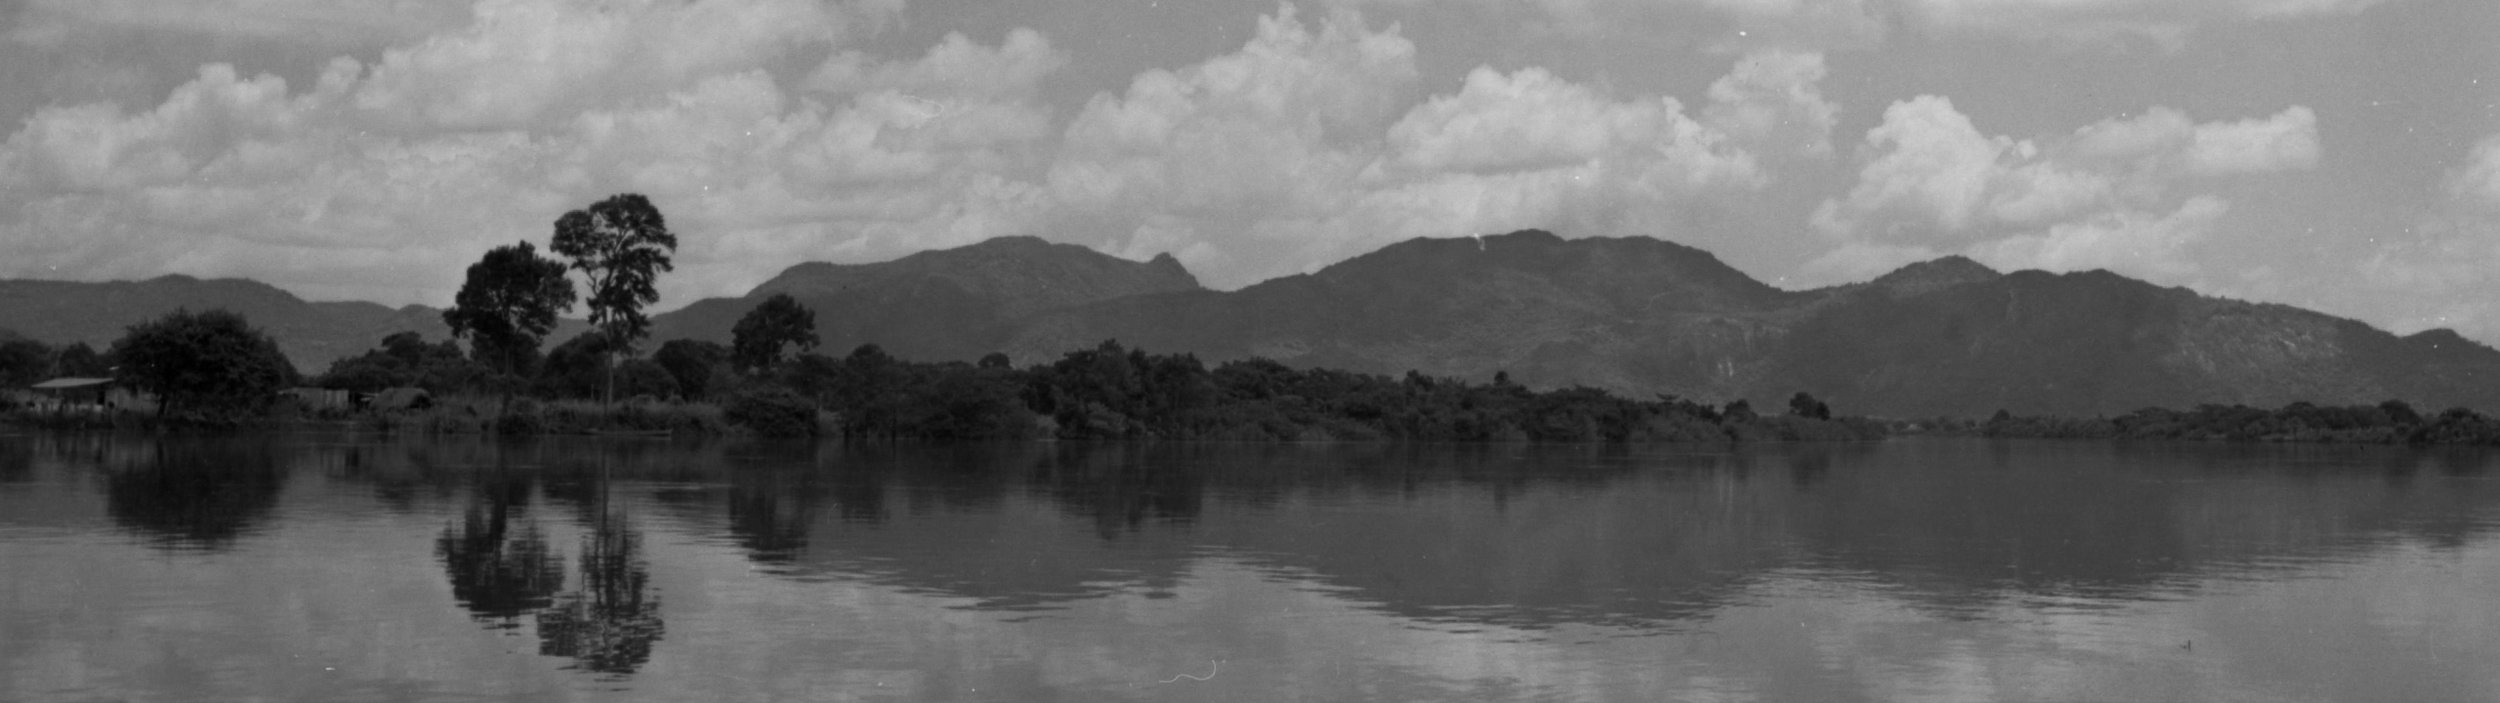 Cropped panorama of Venezuela photographed by Hector Sandoval, my grandfather